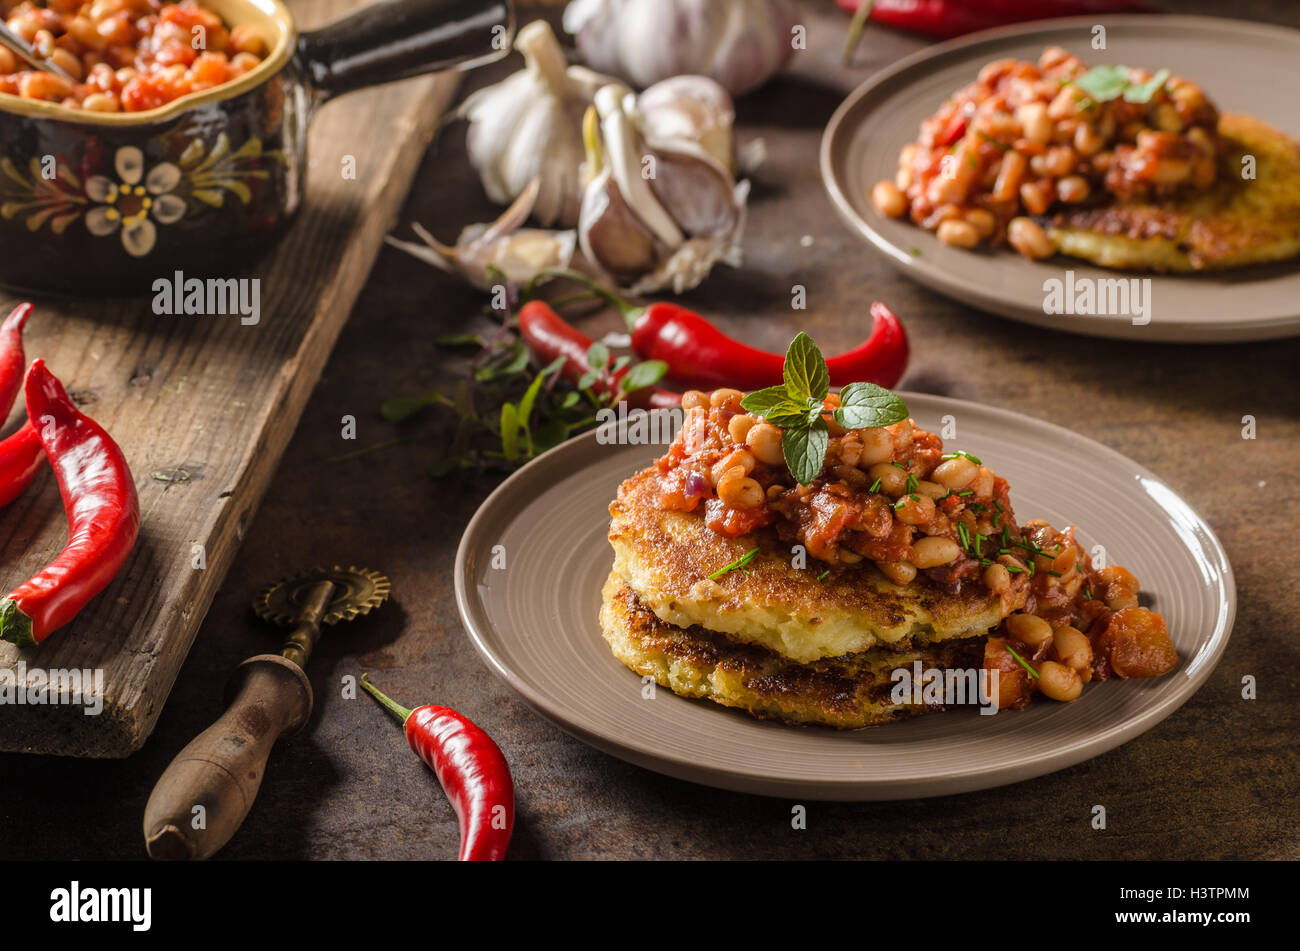 Bake beans with fluffy potato cakes, spicy and delicious breakfast - Stock Image